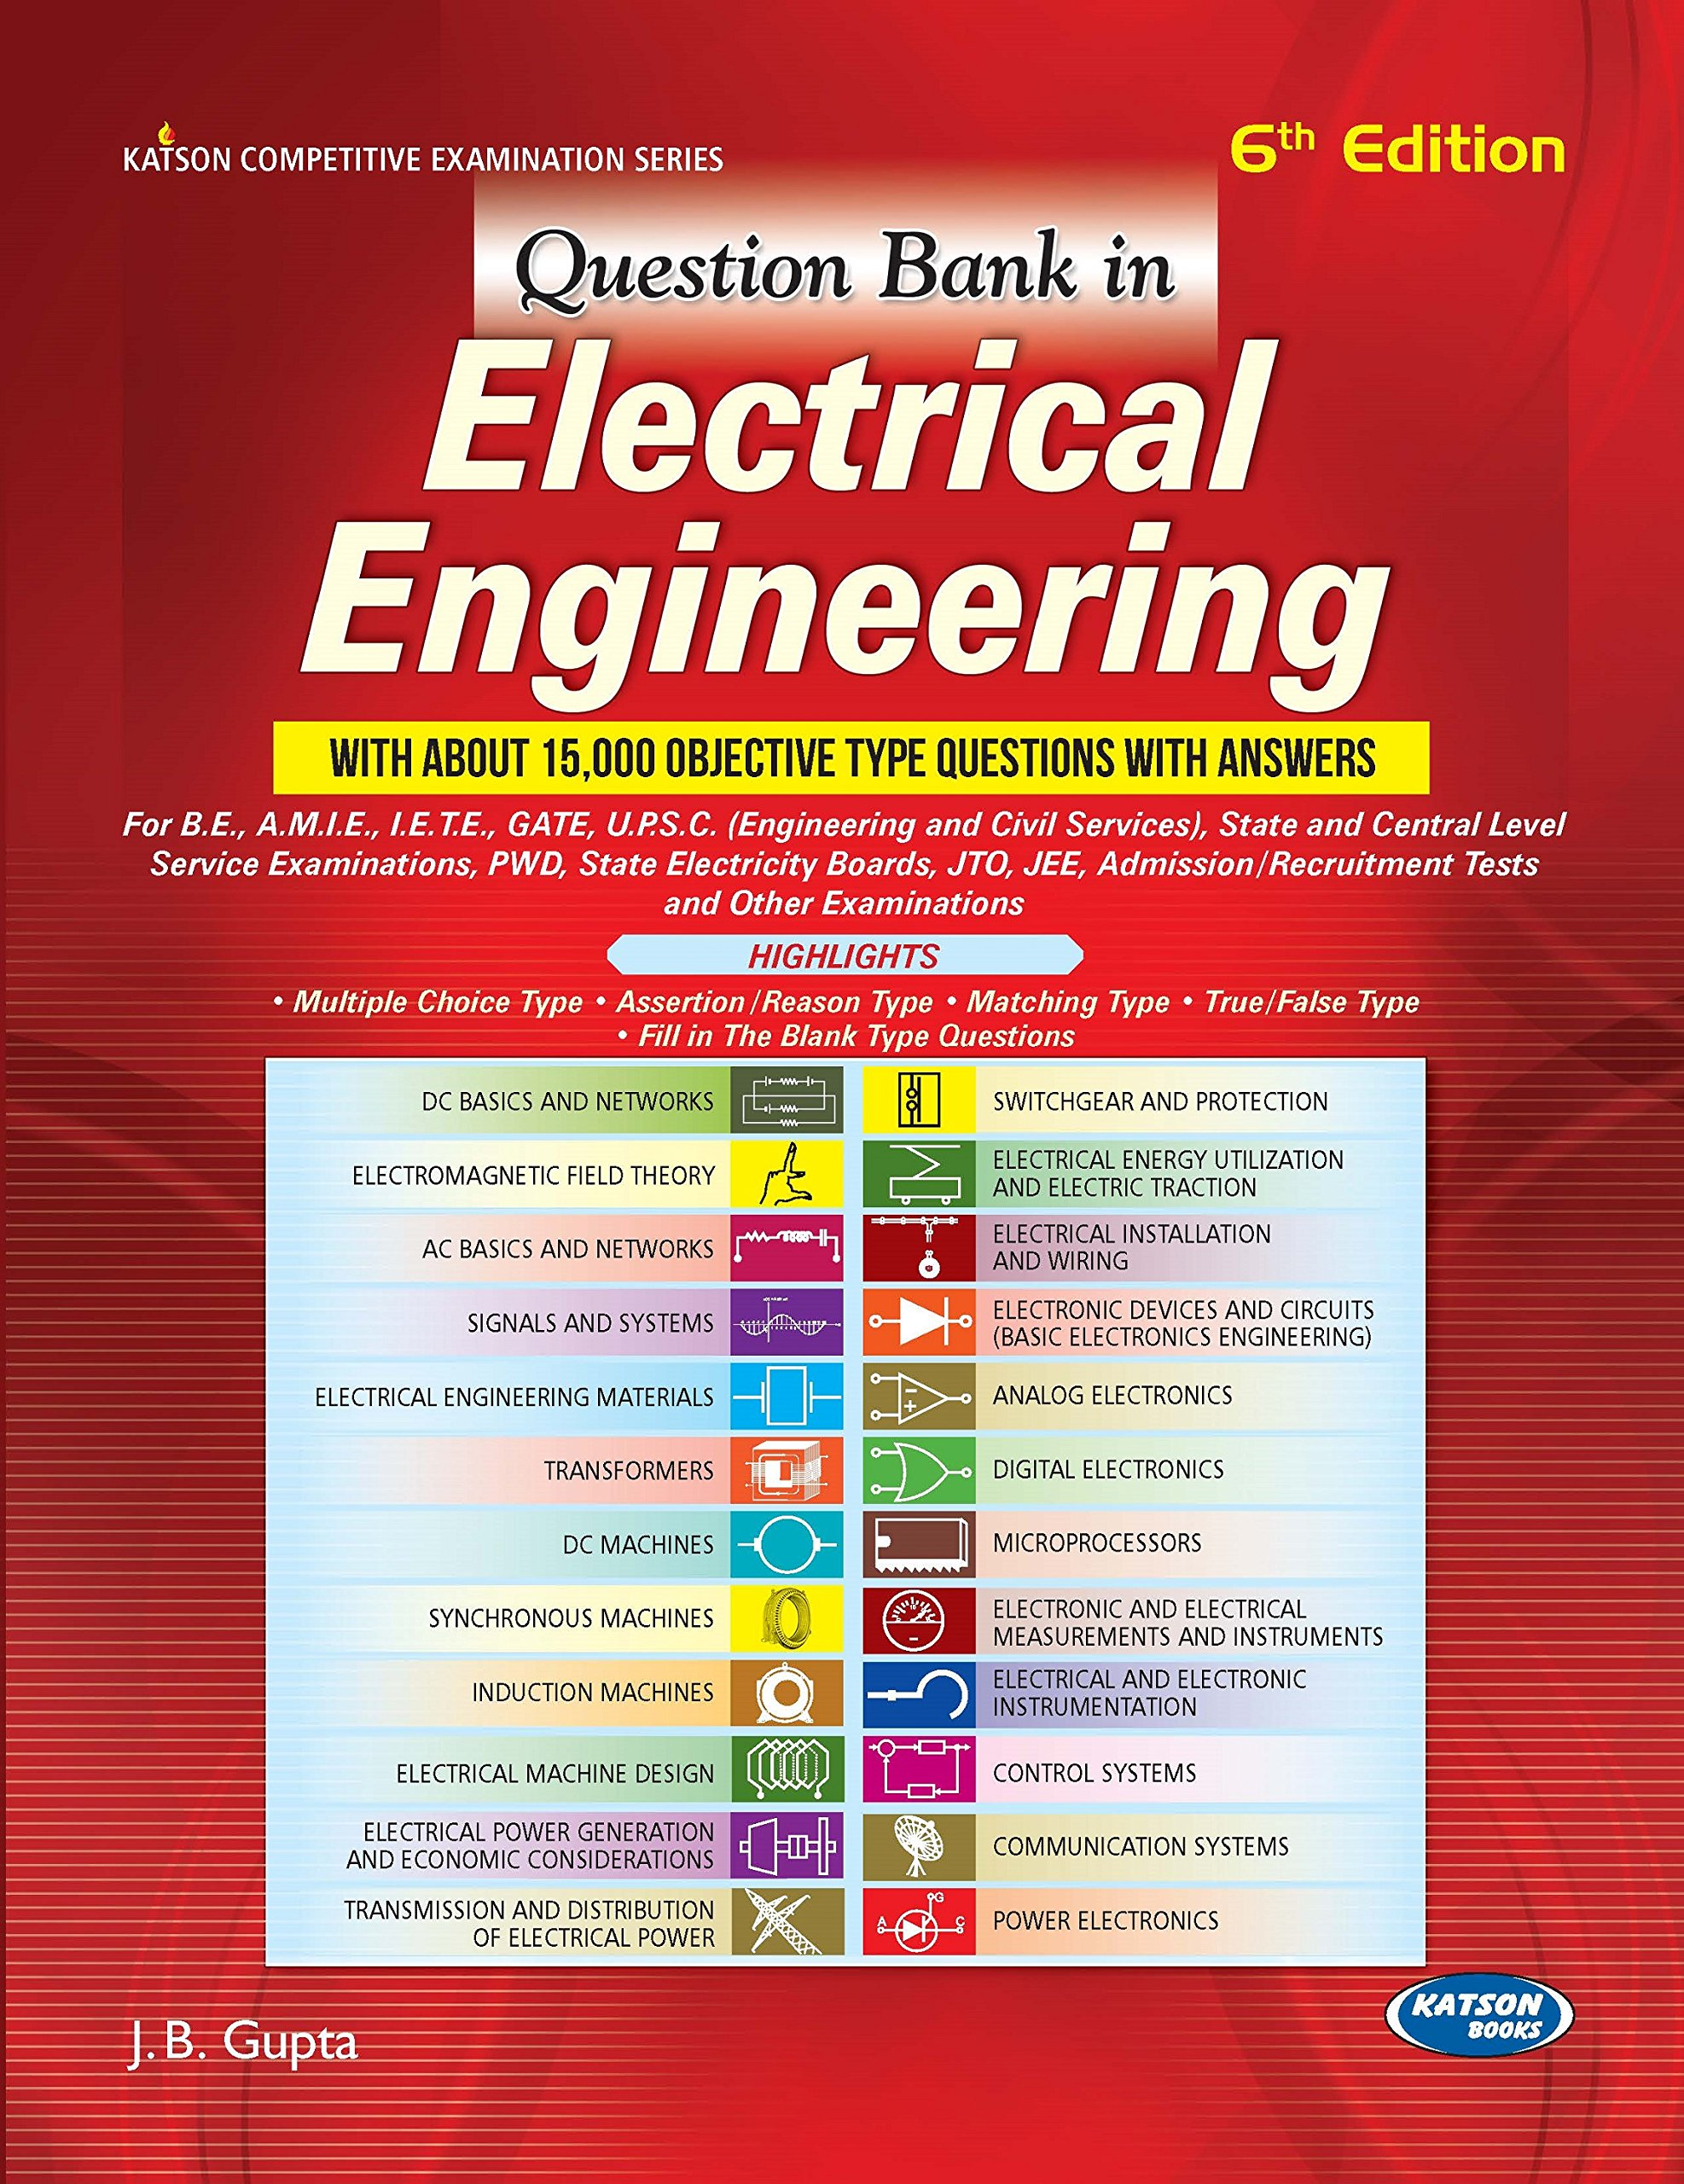 Pdf Question Bank In Electrical Engineering By J B Gupta Book Free Download Easyengineering